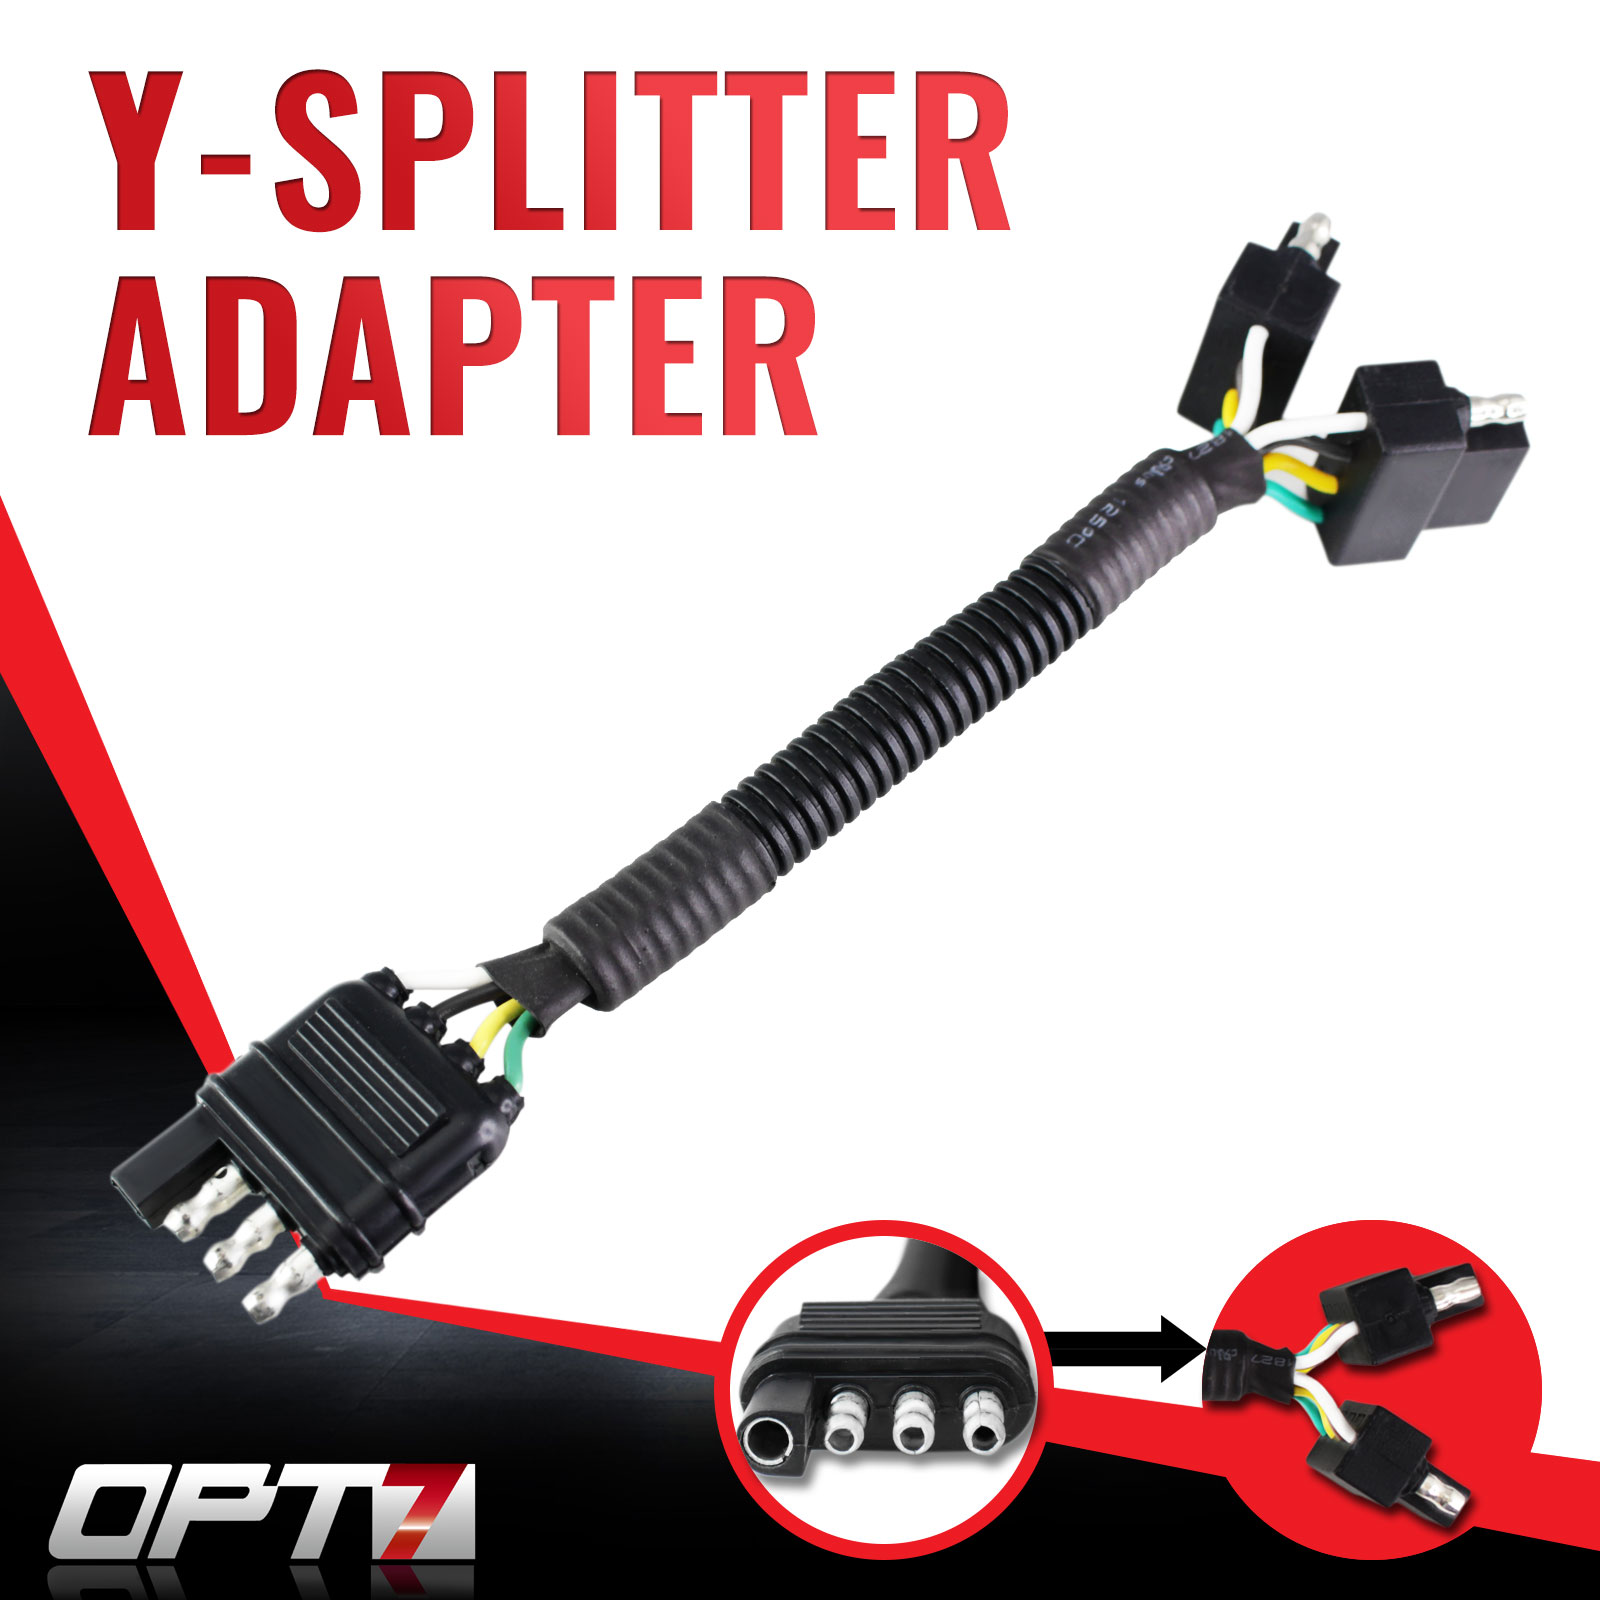 OPT7® Y Splitter 4 Tow Pin Connector Adapter Harness Wiring for Truck Tailgate to Attach to Trailers, LED Tailgate Light Bars, Boats, Towing, Construction & Safety Lighting – Weatherproof Construction